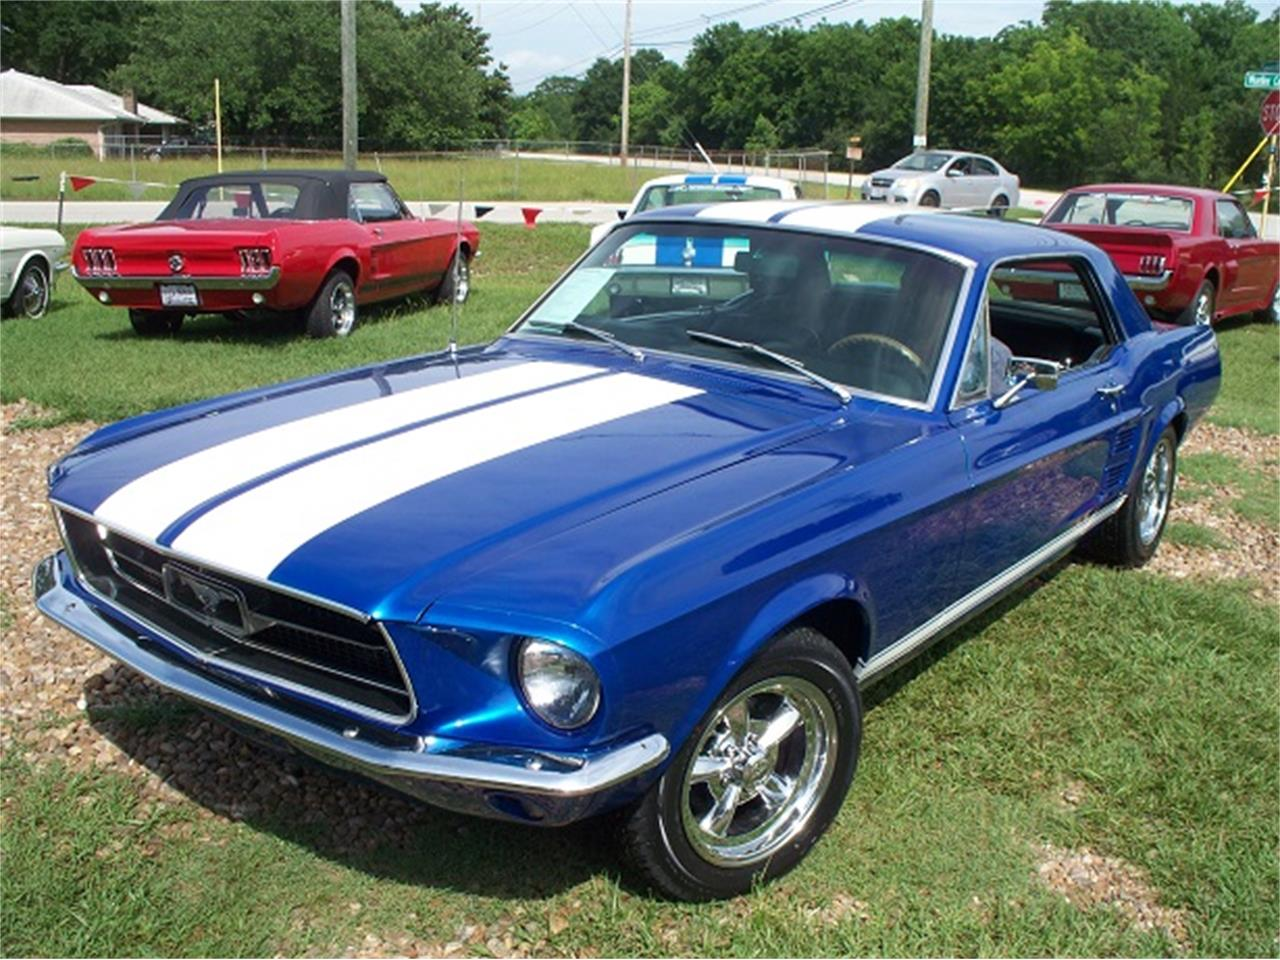 Large picture of 67 mustang nohm